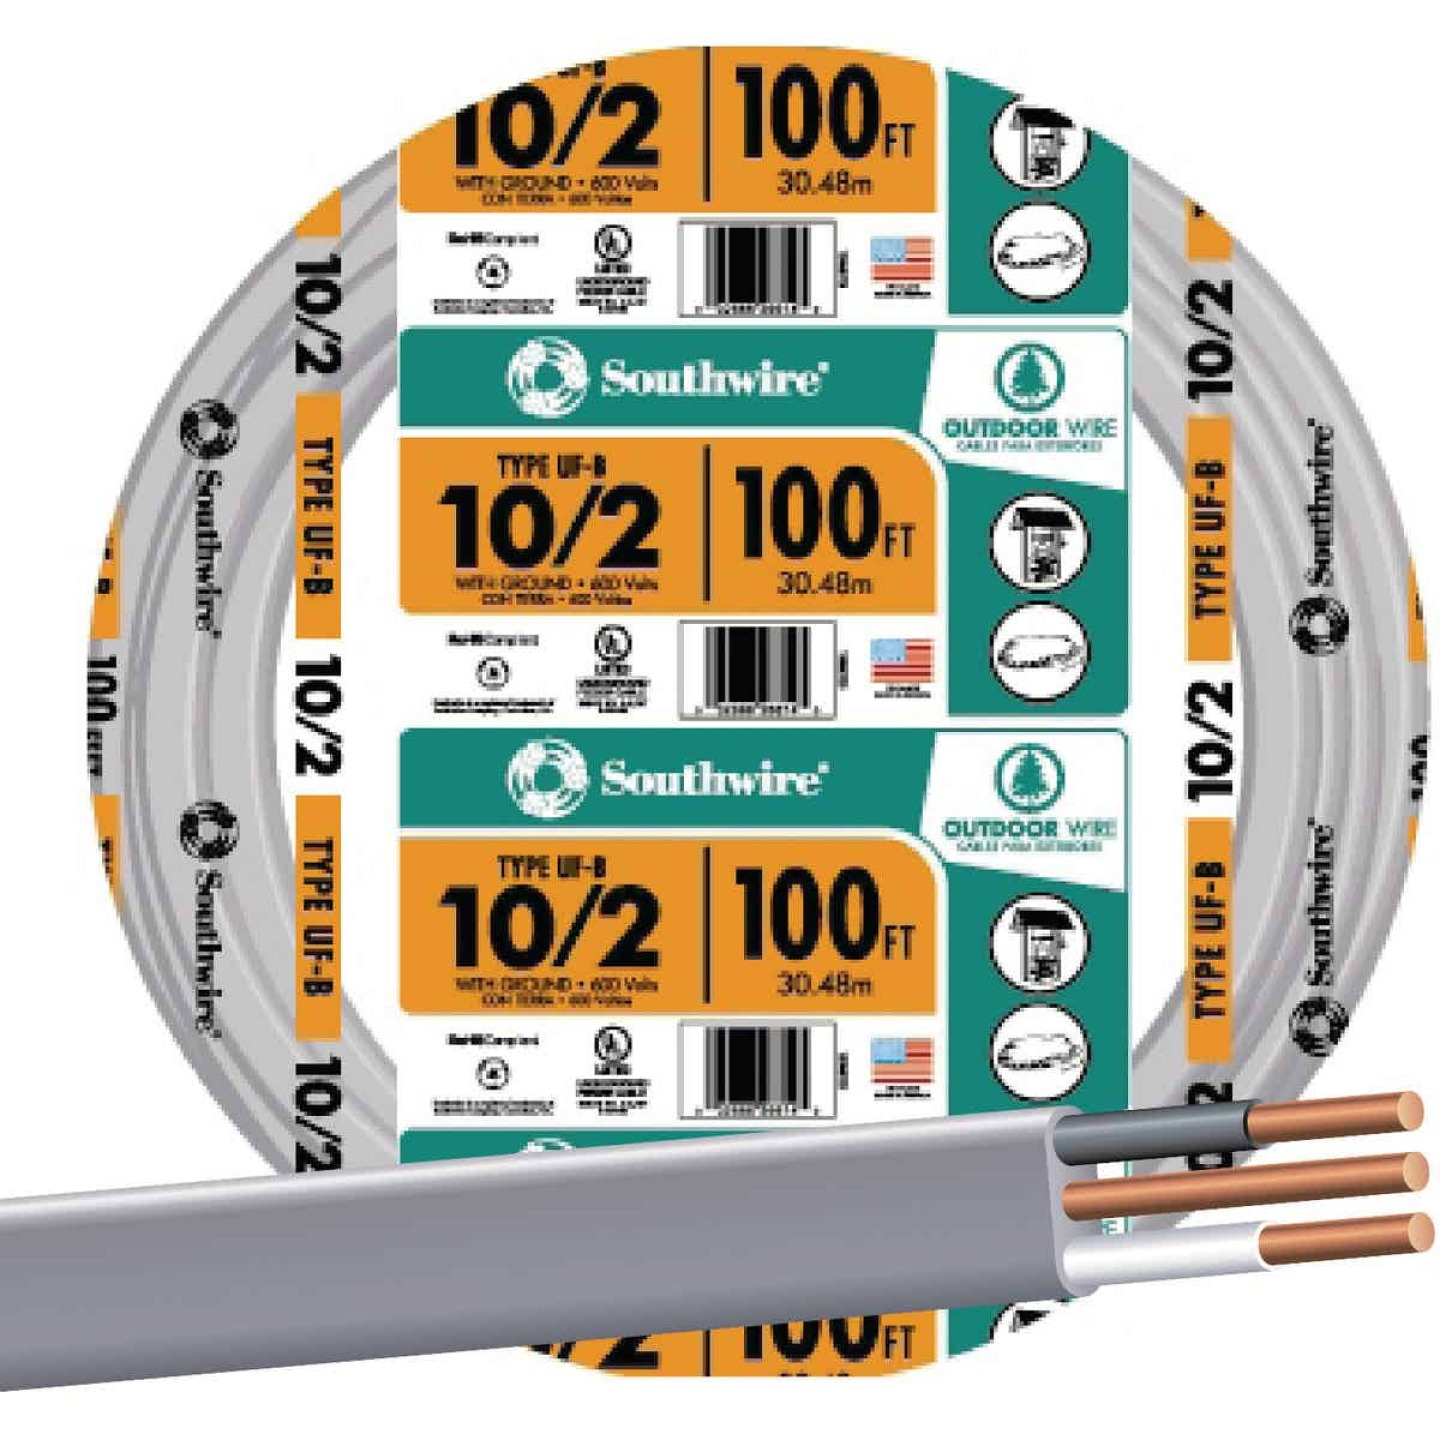 Southwire 100 Ft. 10 AWG 2-Conductor UFW/G Wire Image 1